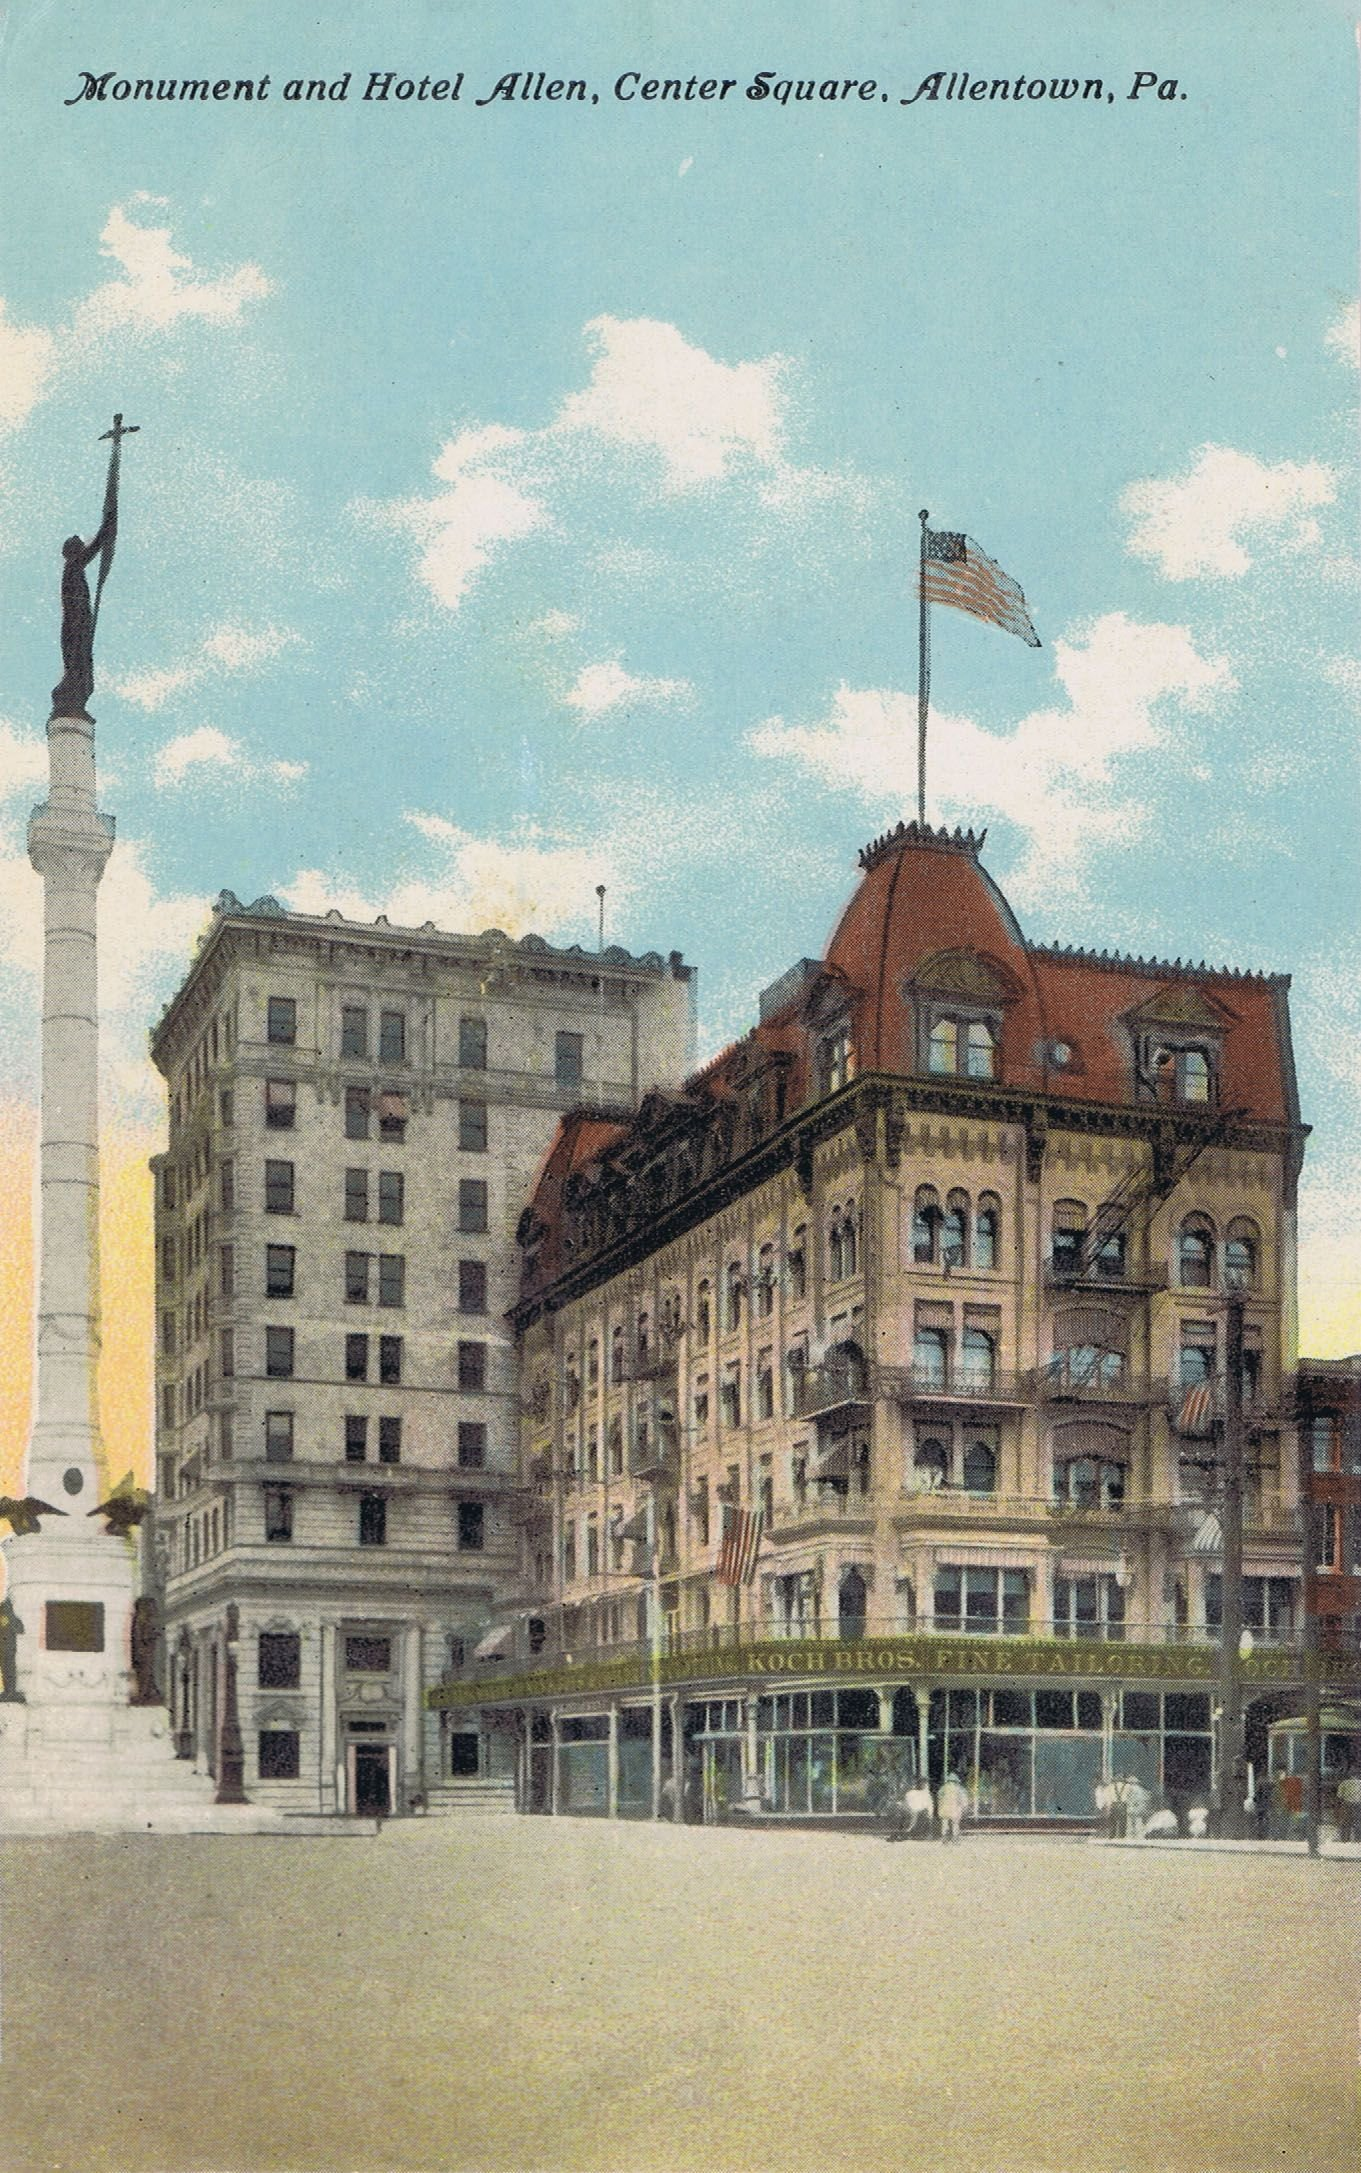 Center Square's Soldiers and Sailors Memorial (left), the Allen Hotel (foreground) and the Allentown National Bank (background) c. 1910.